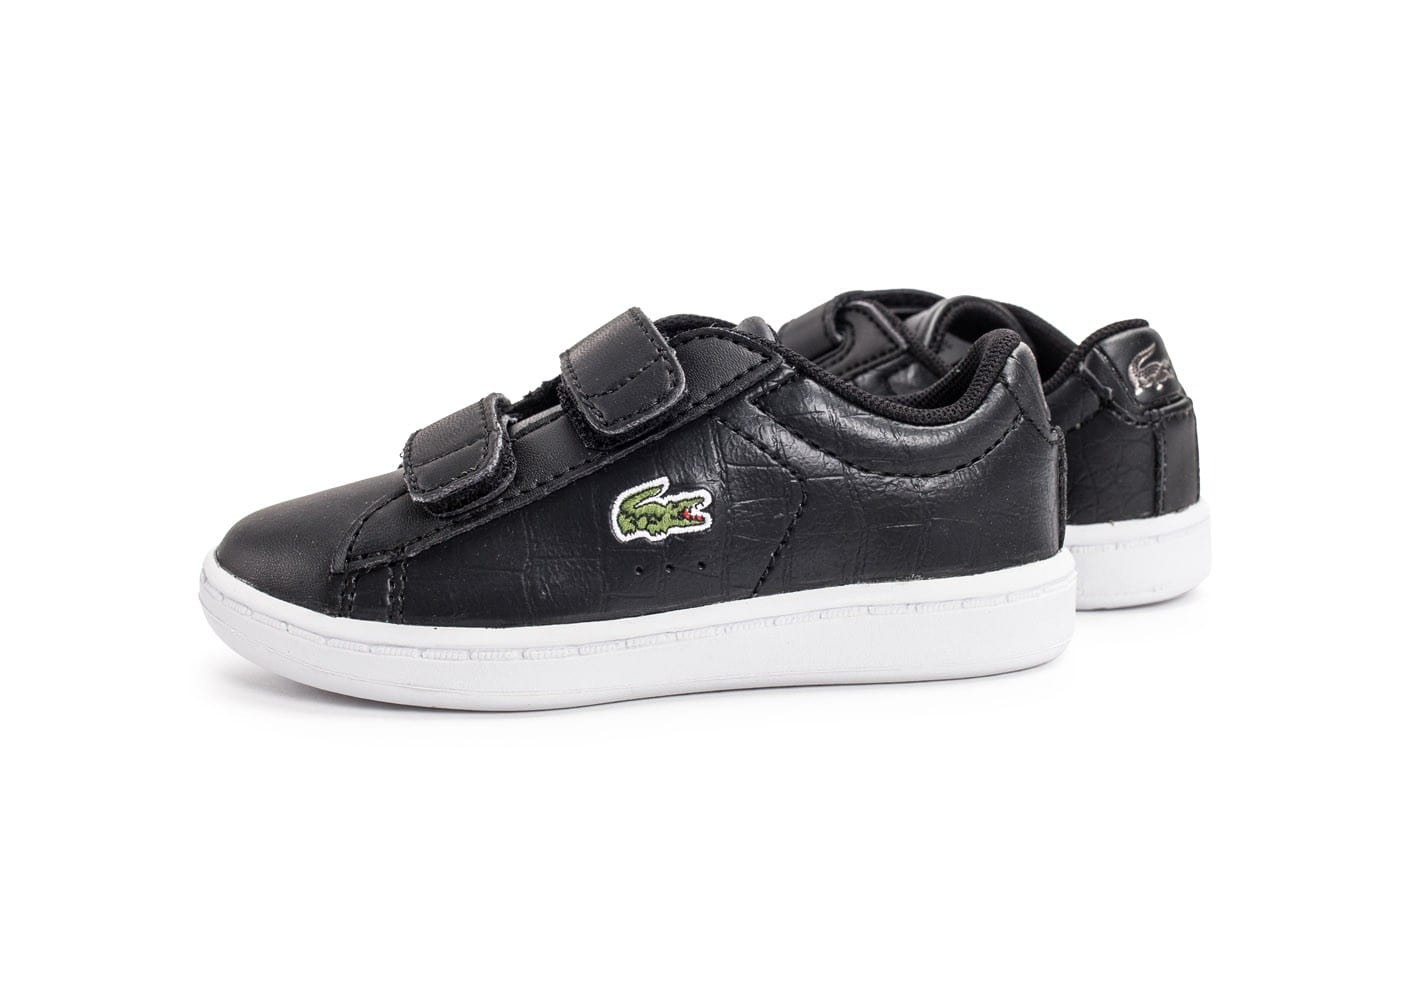 Lacoste carnaby evo b b noire et blanche chaussures - Lacoste carnaby evo cls baskets en cuir perfore ...